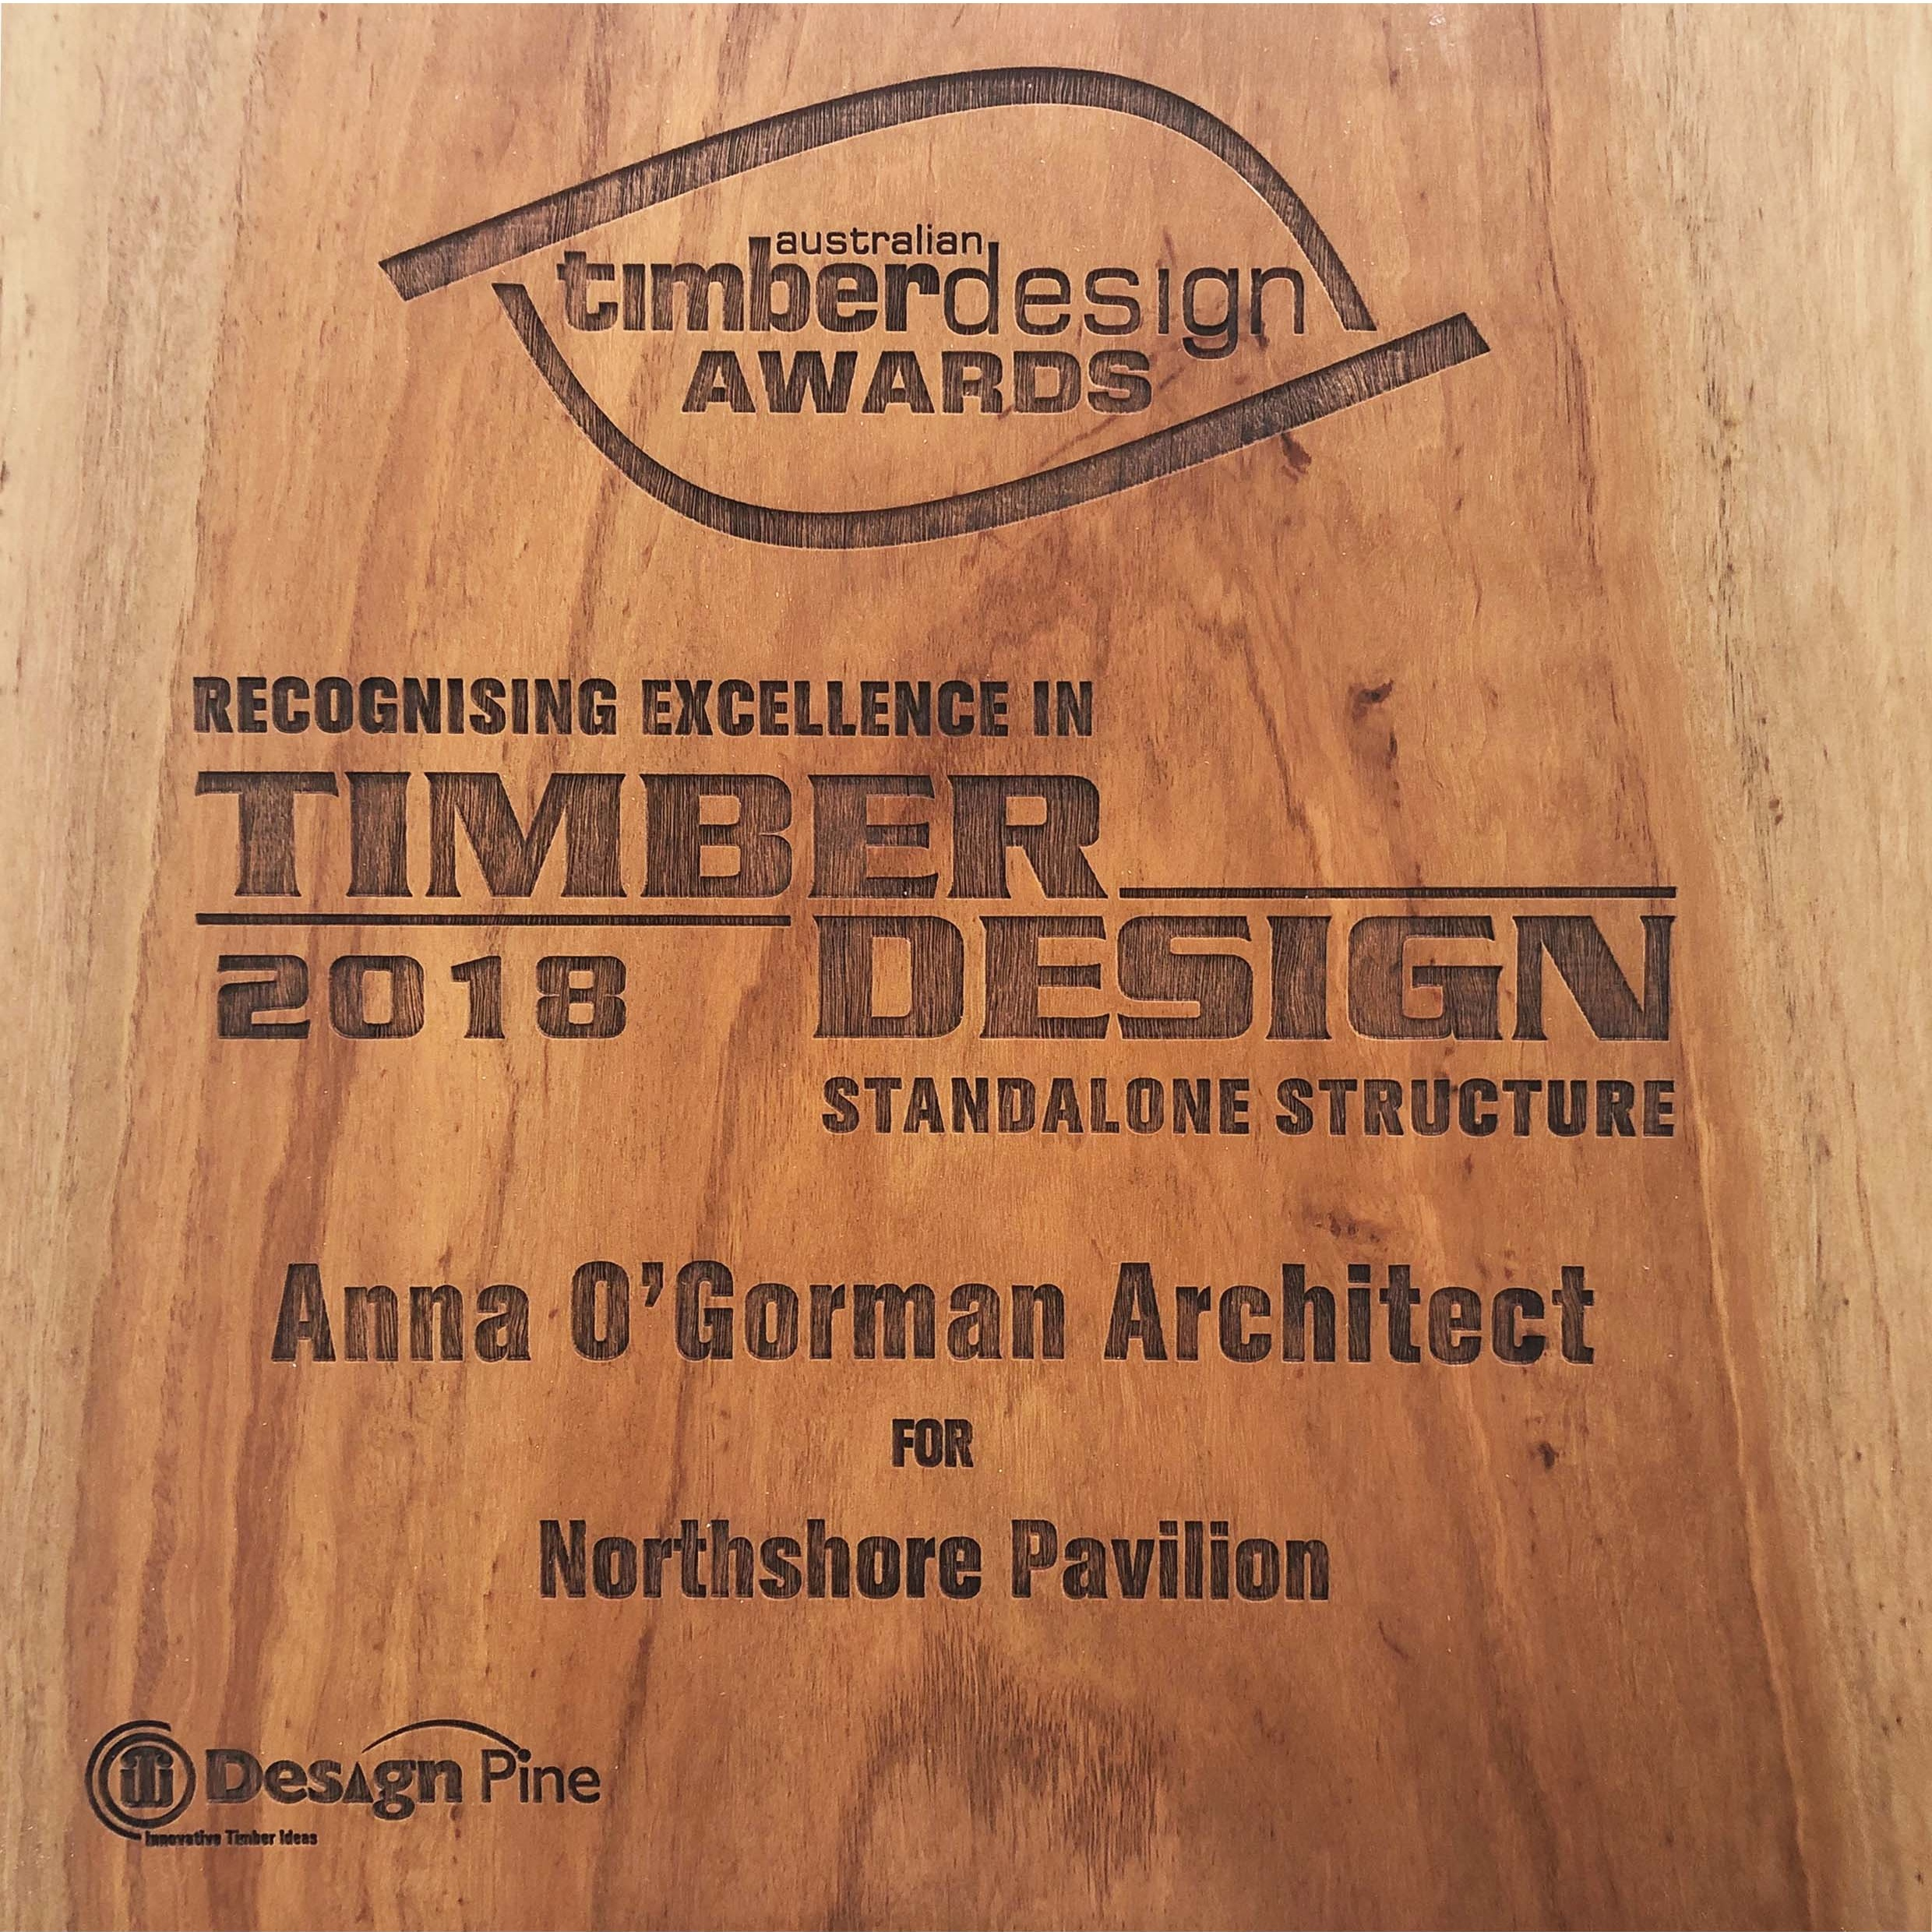 timber+design+awards+news.jpg